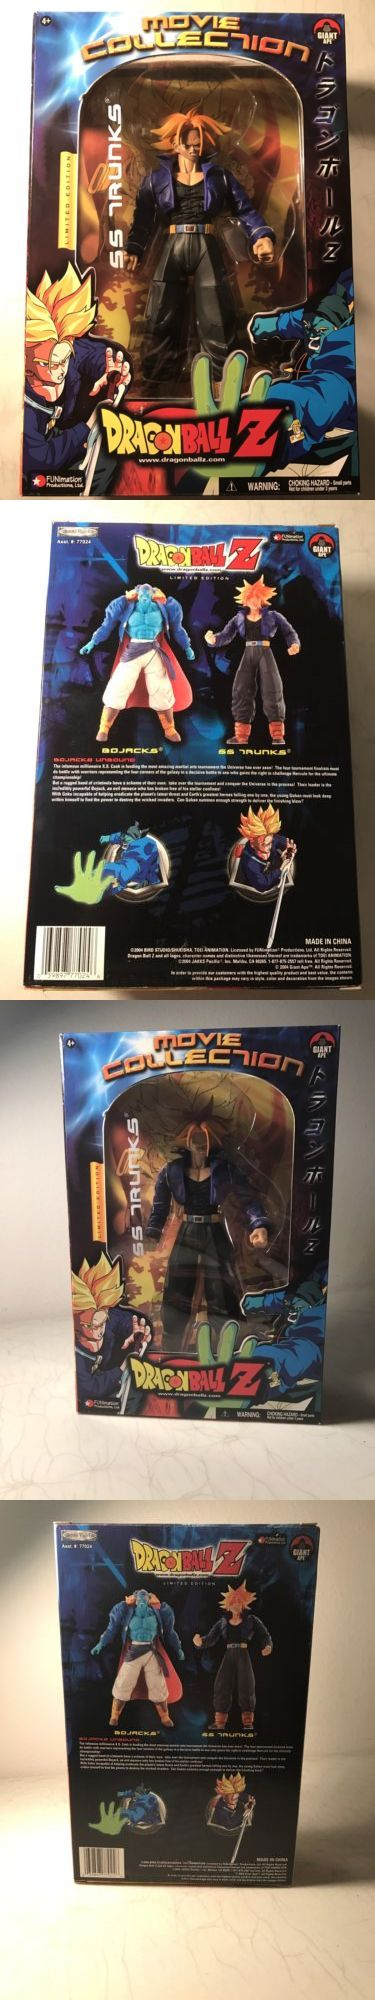 DragonBall Z 7117: Dragon Ball Z Movie Collection Ss Trunks Action Figure Nib -> BUY IT NOW ONLY: $34.99 on eBay!